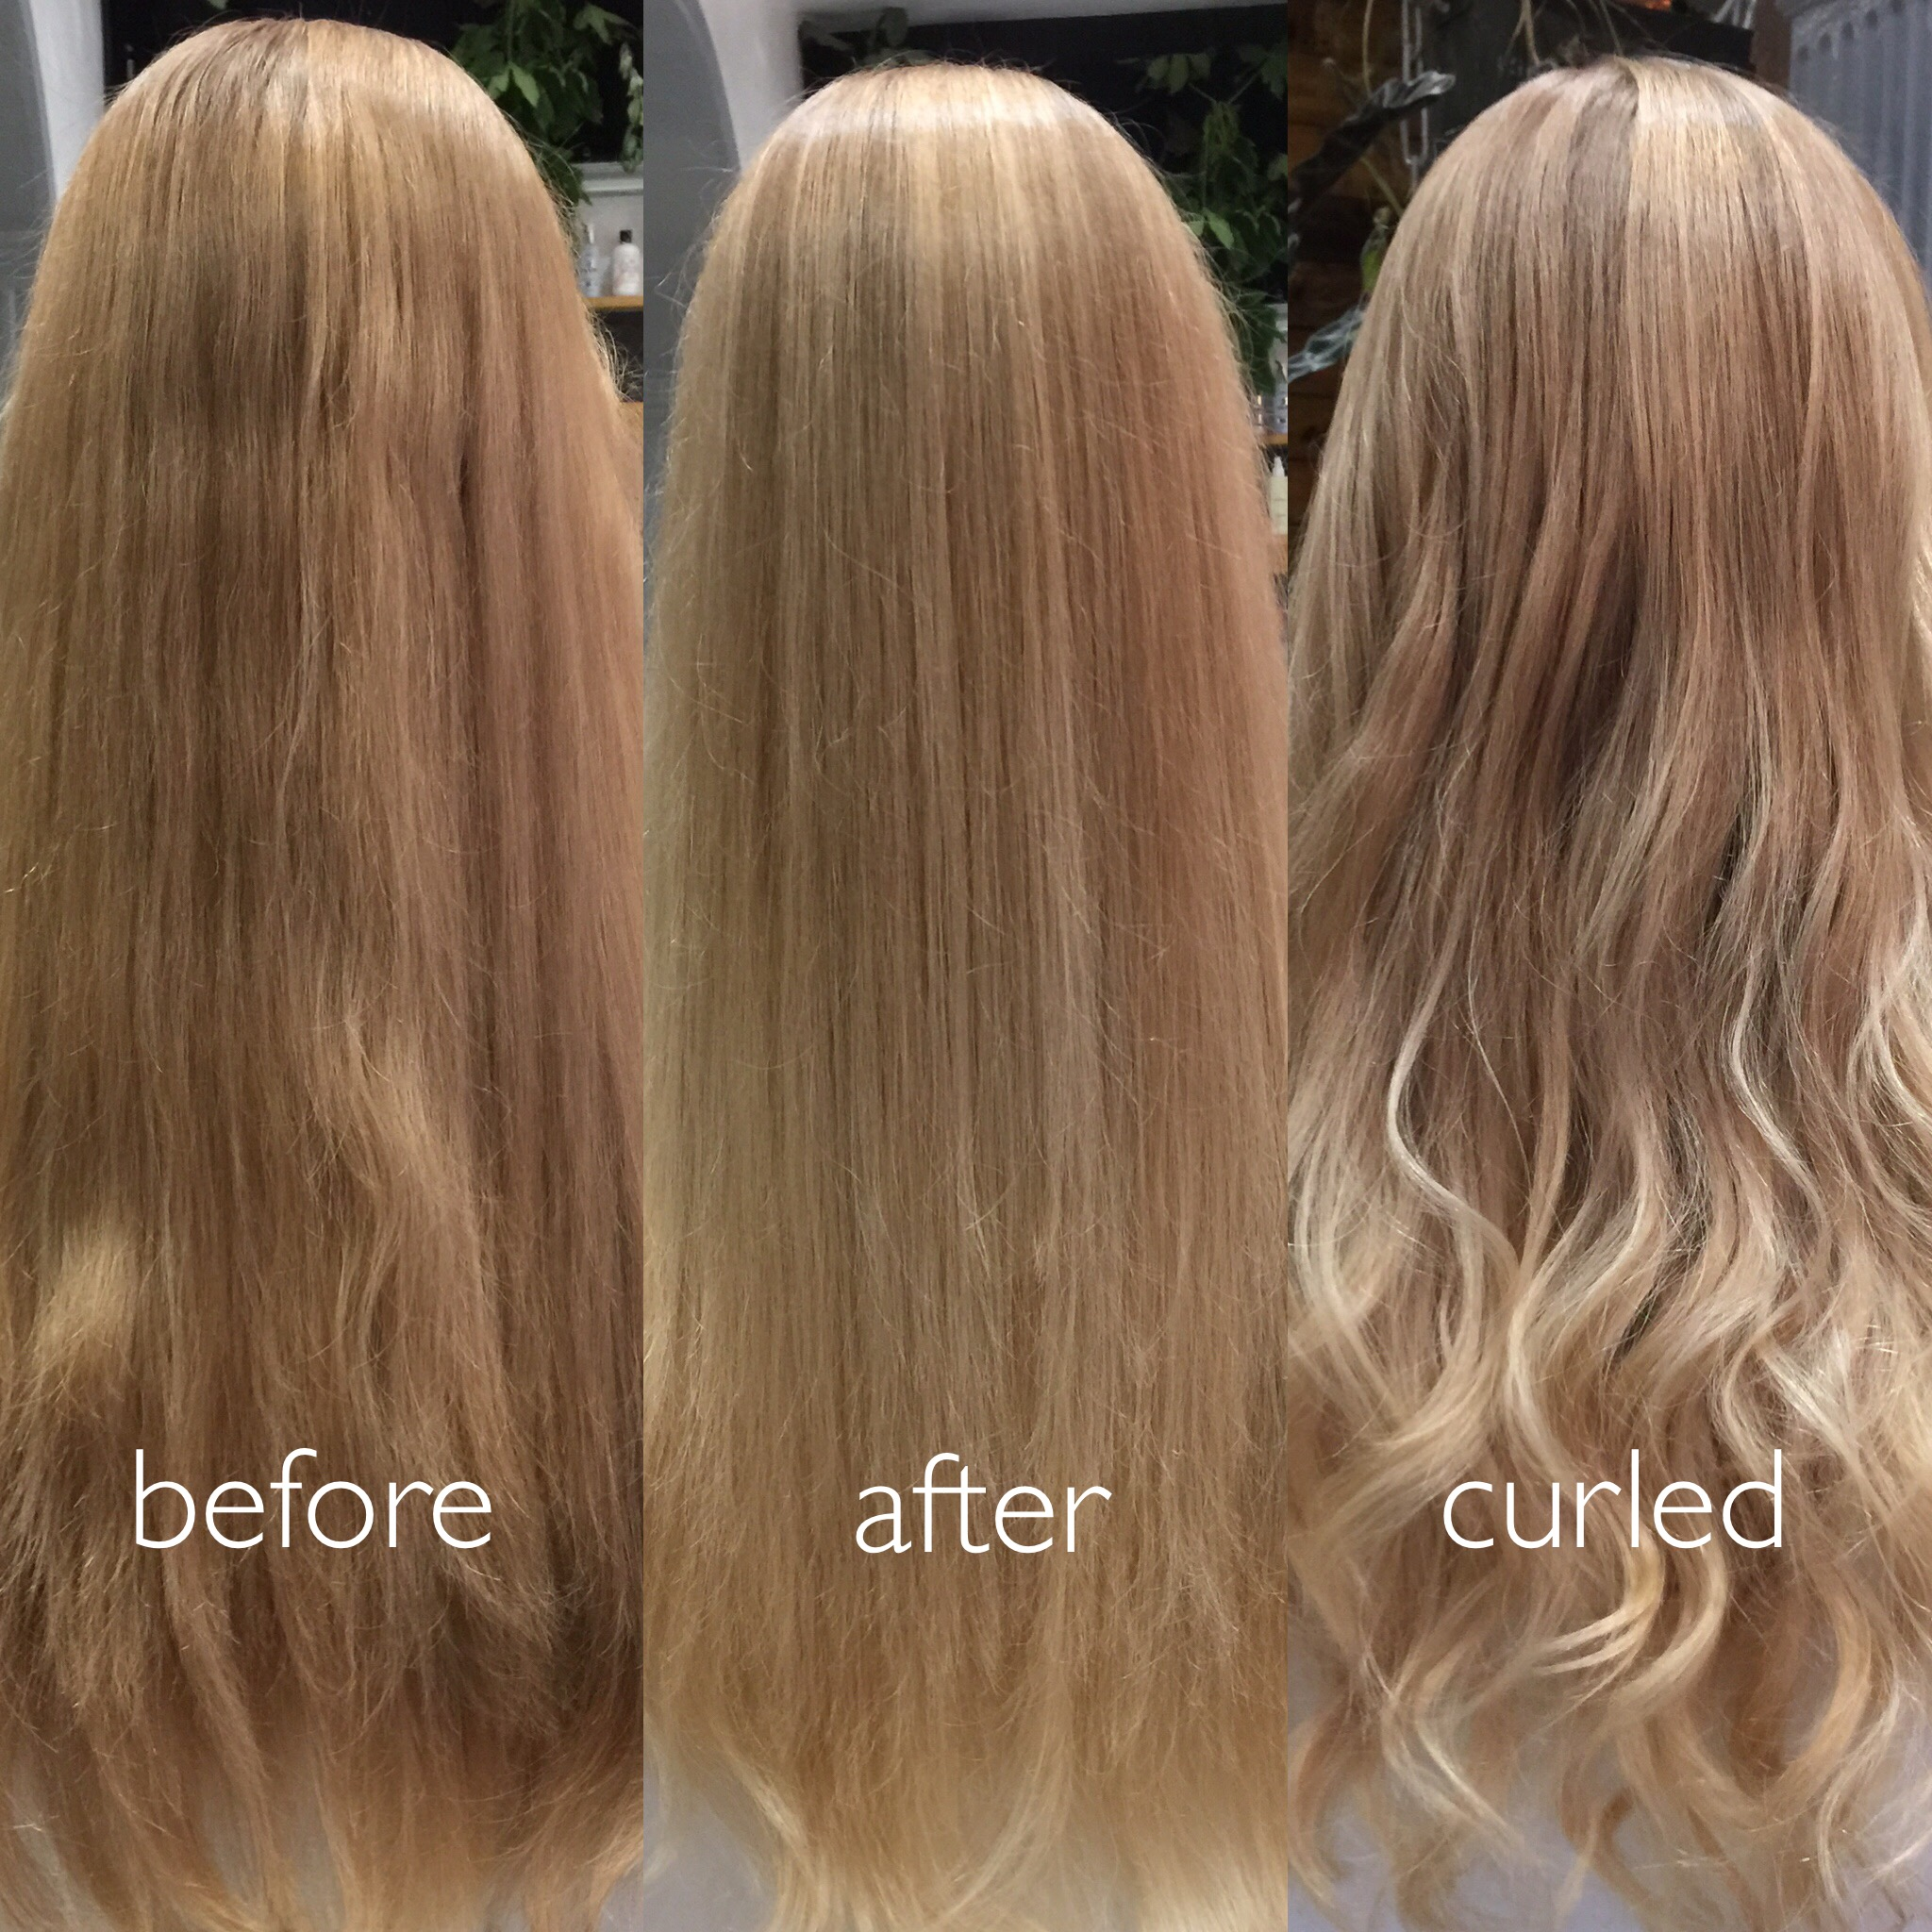 Before & After Full Balayage